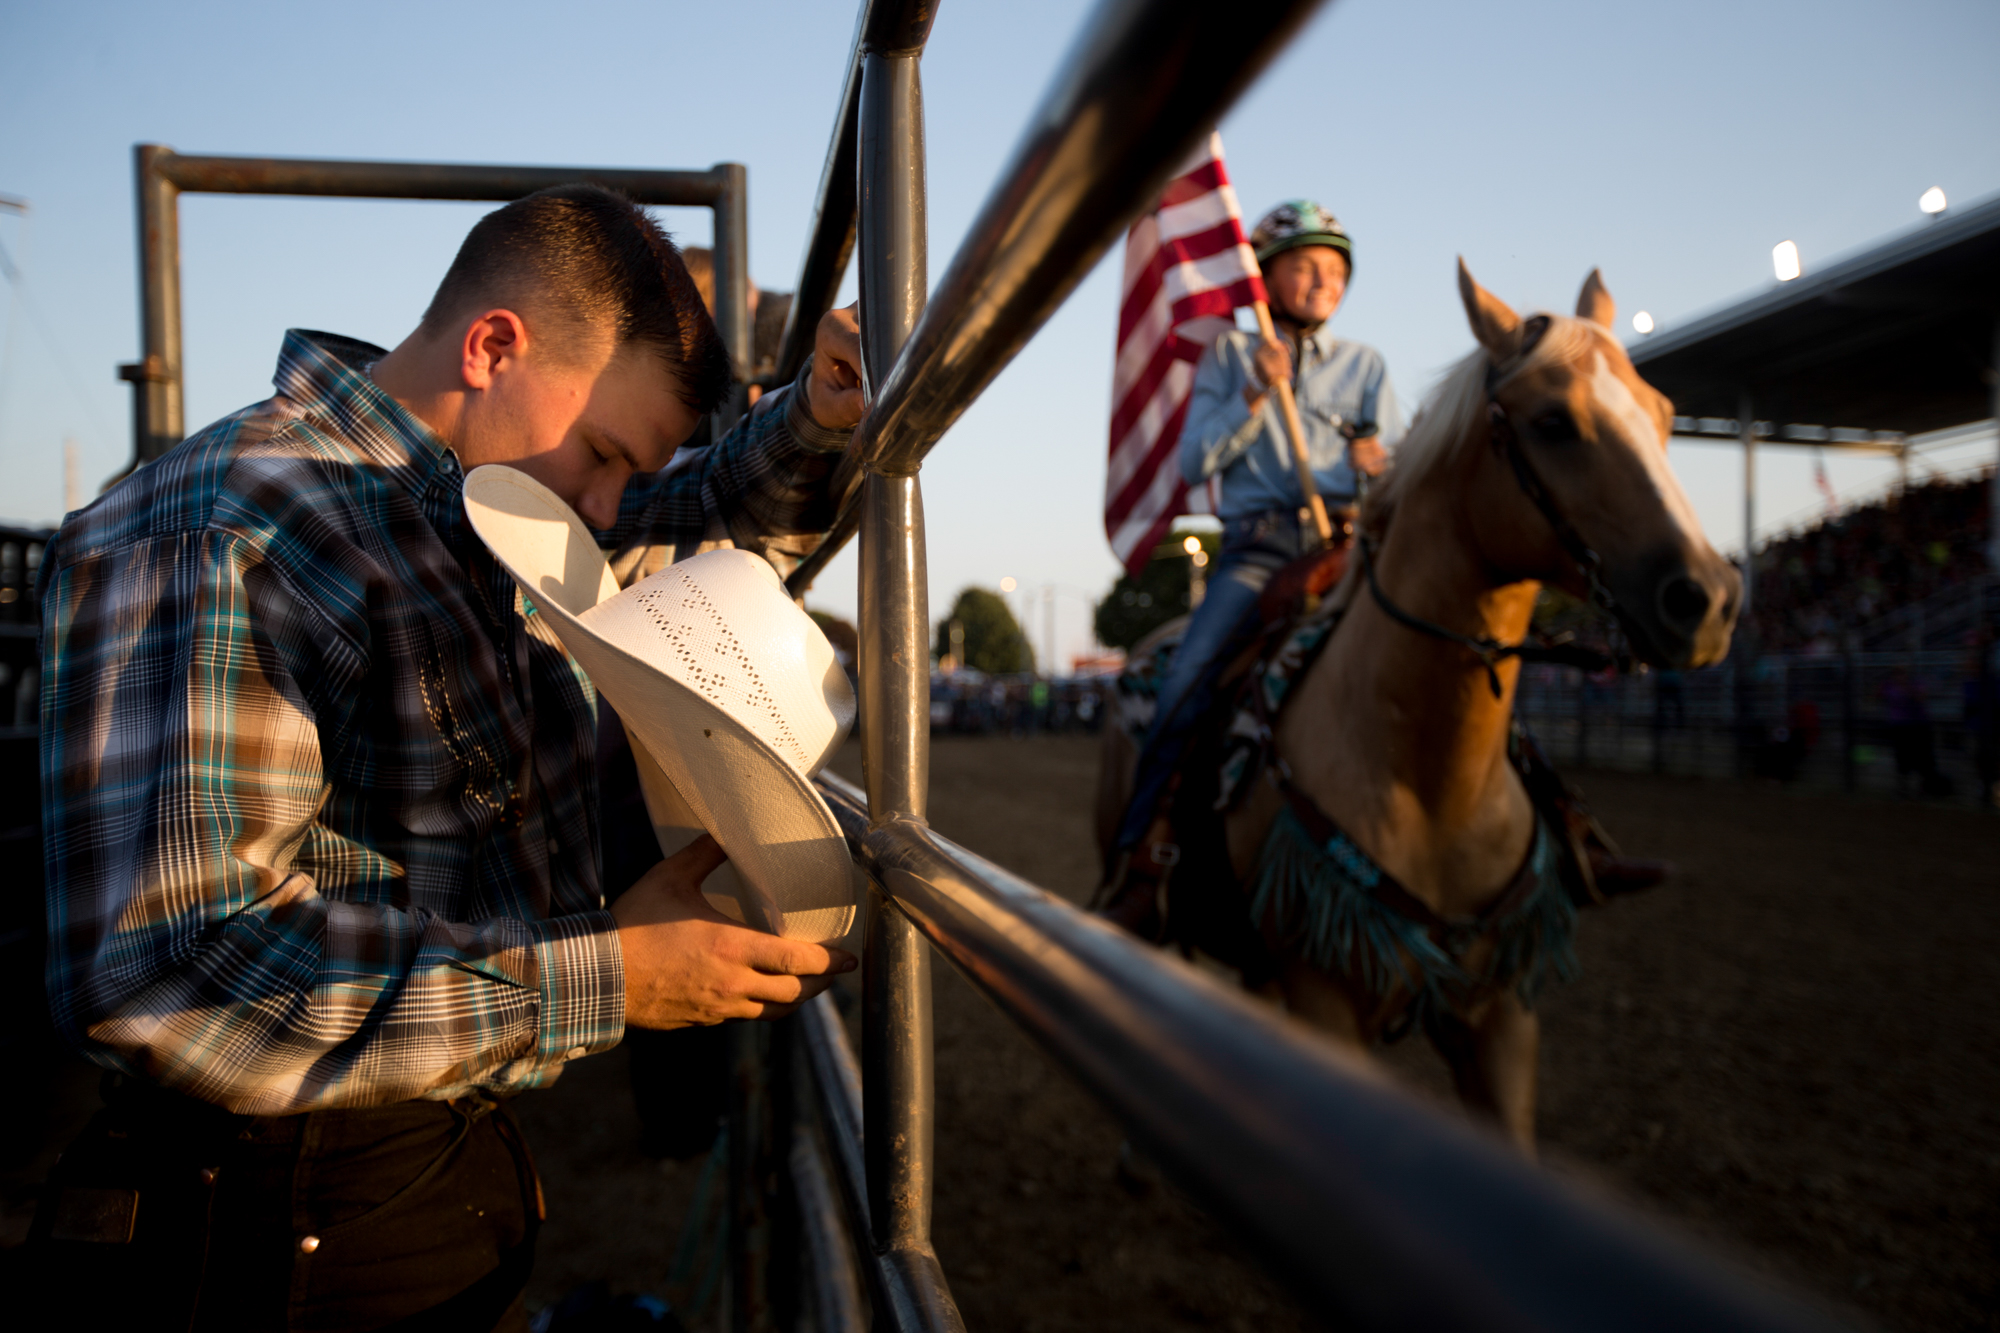 A bull rider prays before the Next Level Pro Bull Riding competition on Friday, Aug. 10, 2018, at Boone County Fairgrounds in Belvidere. [SCOTT P. YATES/RRSTAR.COM STAFF]